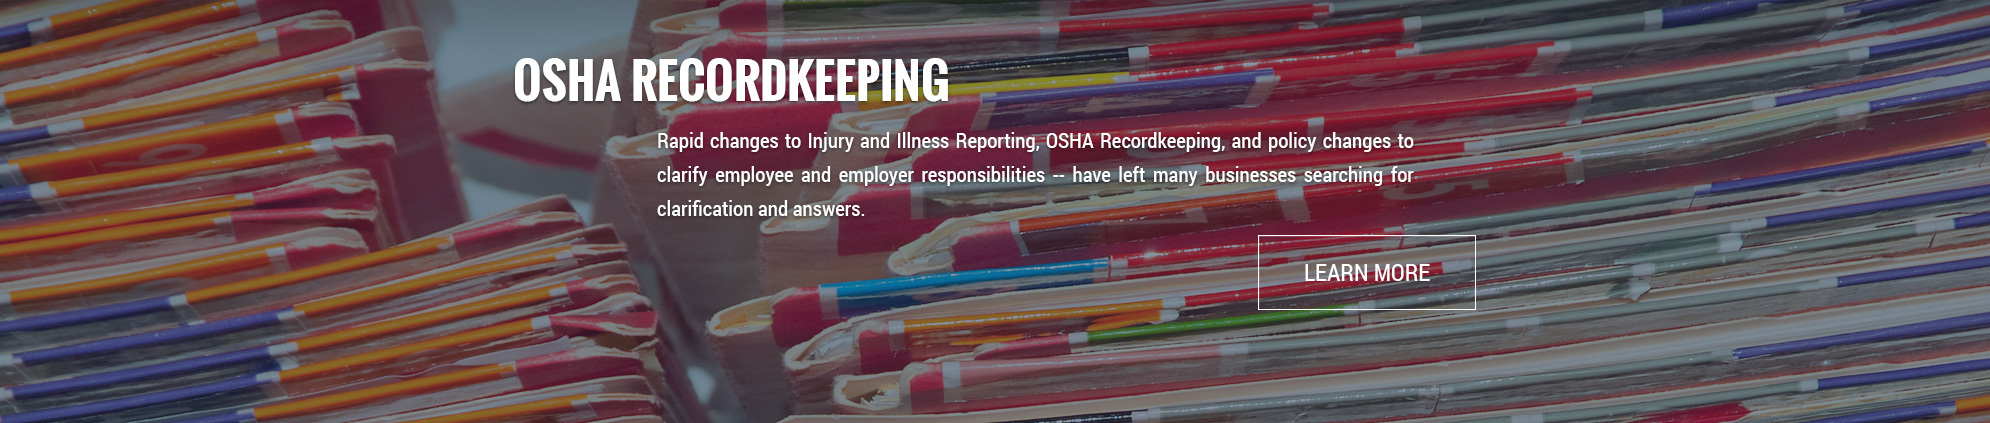 home-recordkeeping